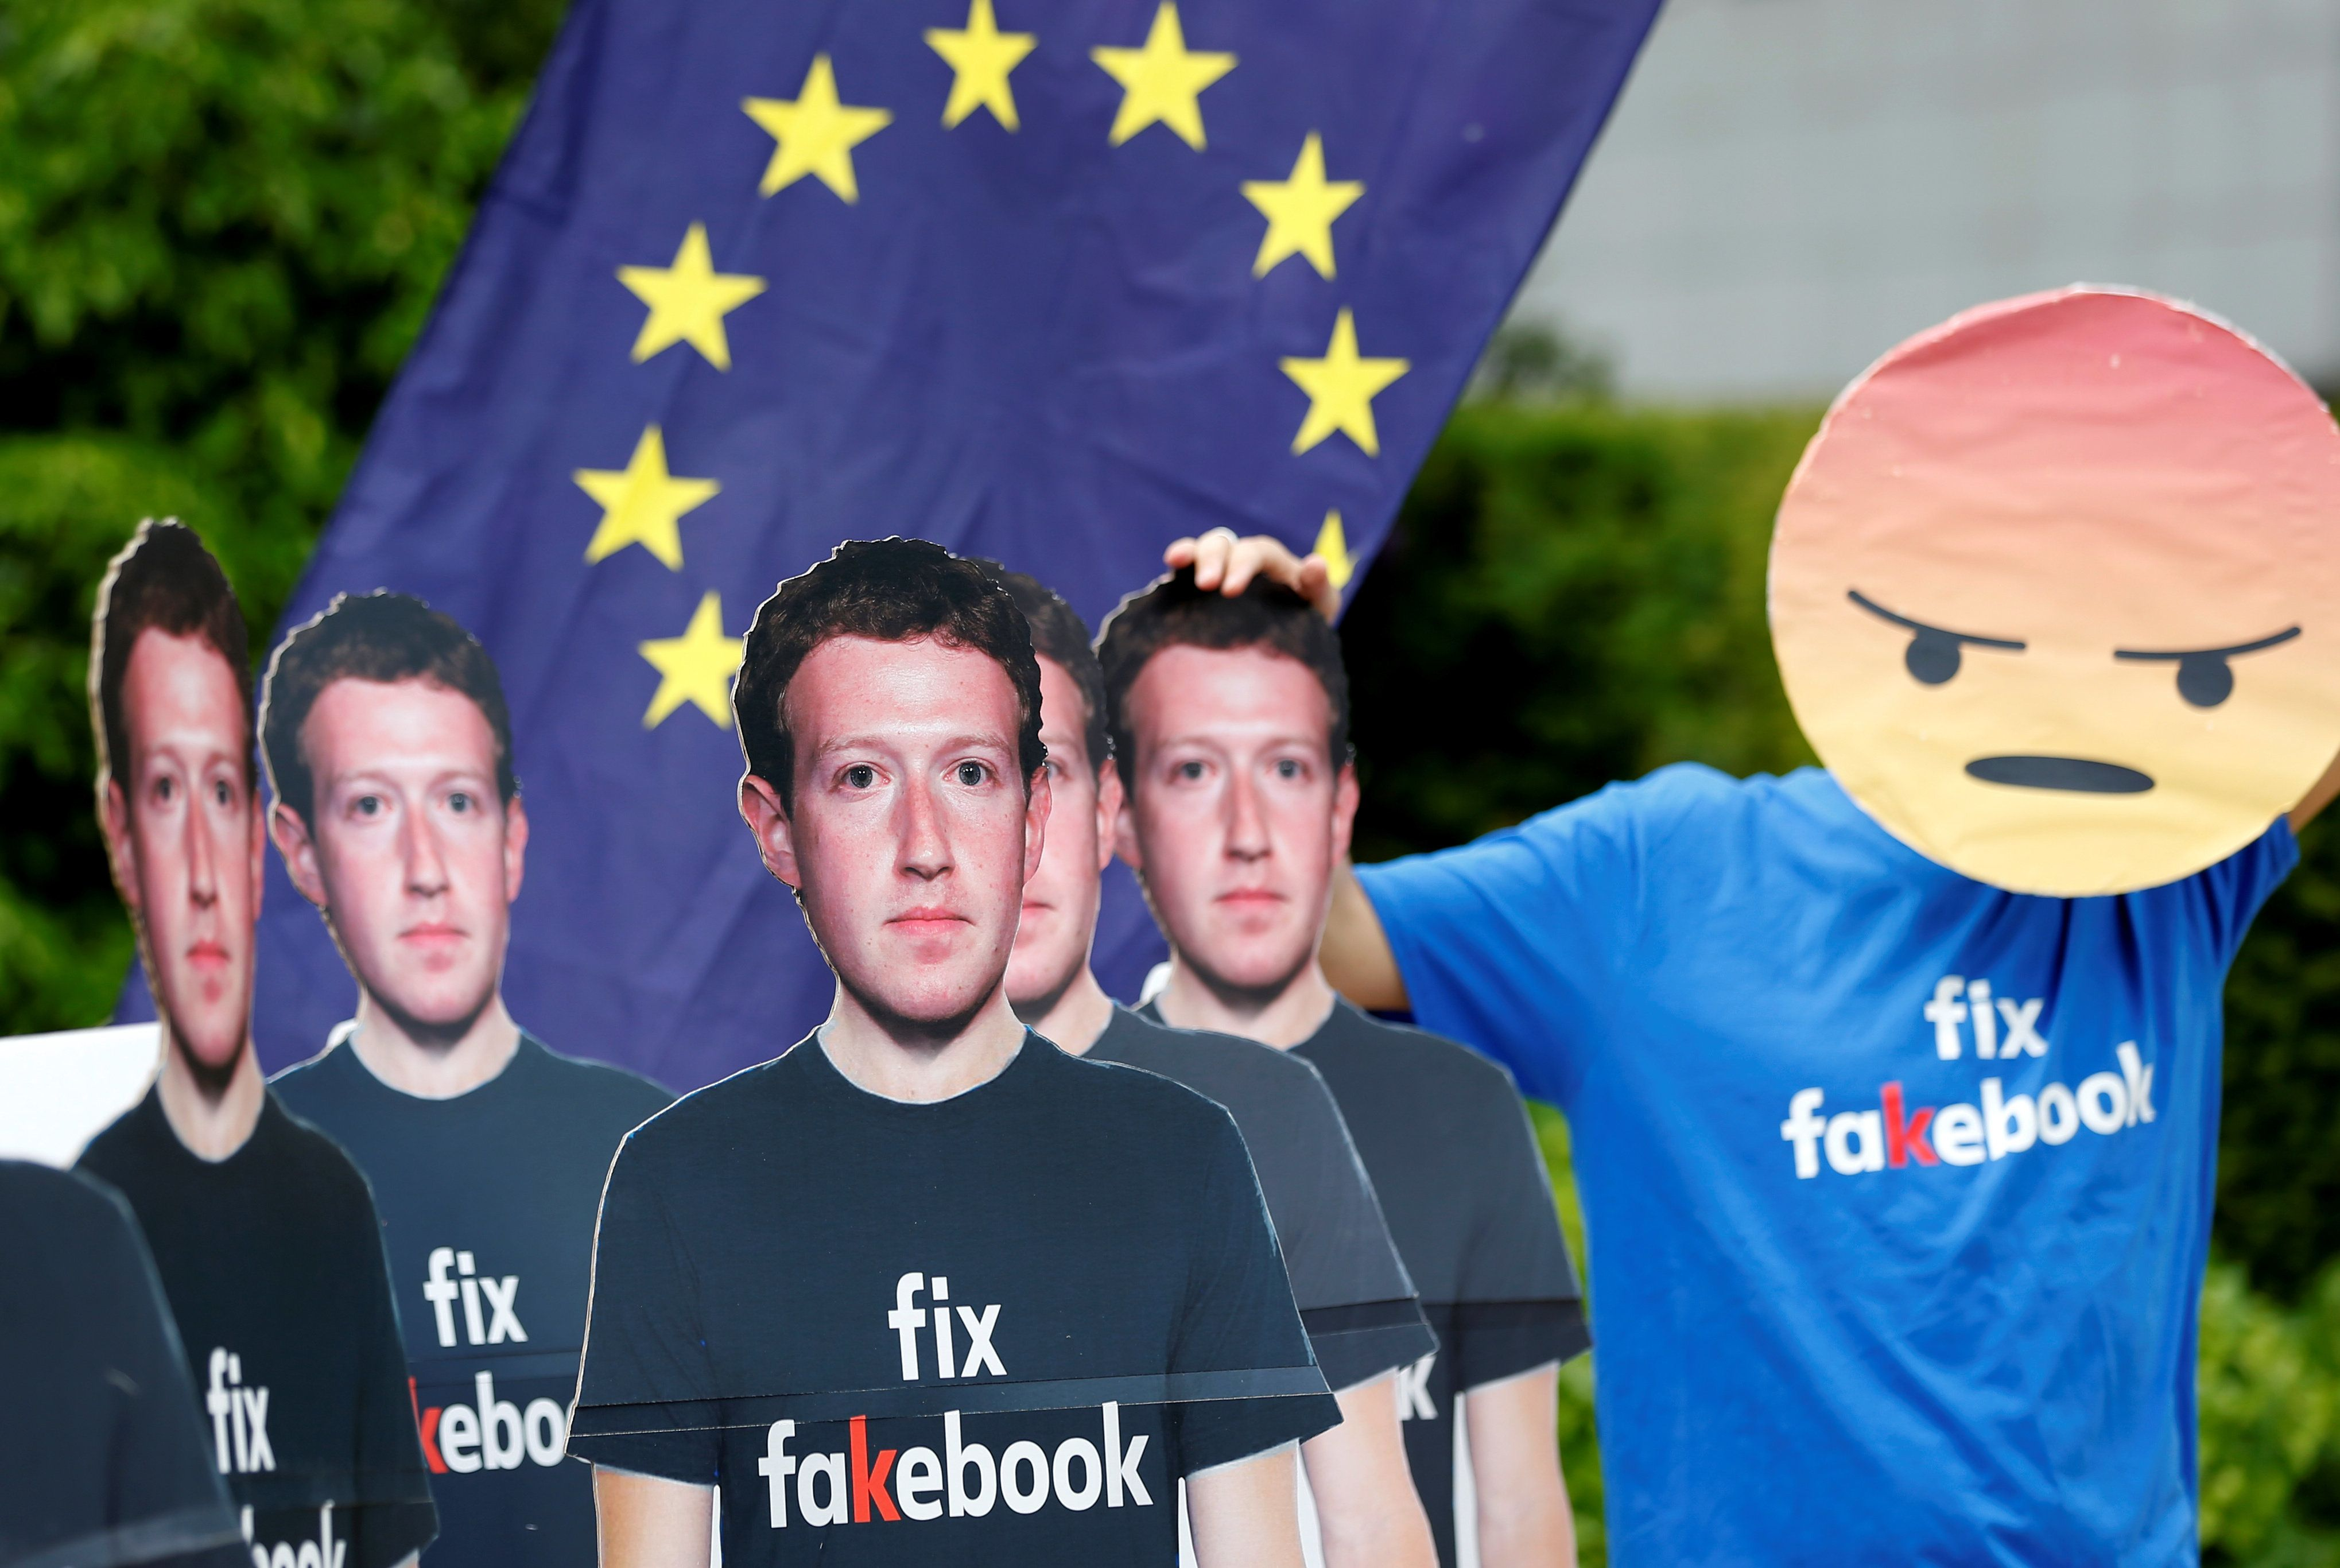 A protester holds an European Union flag next to cardboard cutouts depicting Facebook CEO Mark Zuckerberg during a demonstration ahead of a meeting between Zuckerberg and leaders of the European Parliament in Brussels, Belgium May 22, 2018. REUTERS/Francois Lenoir